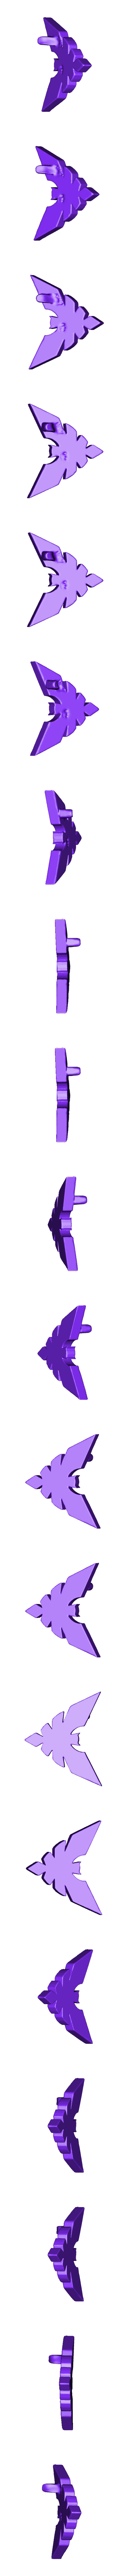 S_Single_Stand.stl Download STL file VAMPS 2 - PANDEMONIUM Model ONLY - by SPARX • 3D printing template, SparxBM